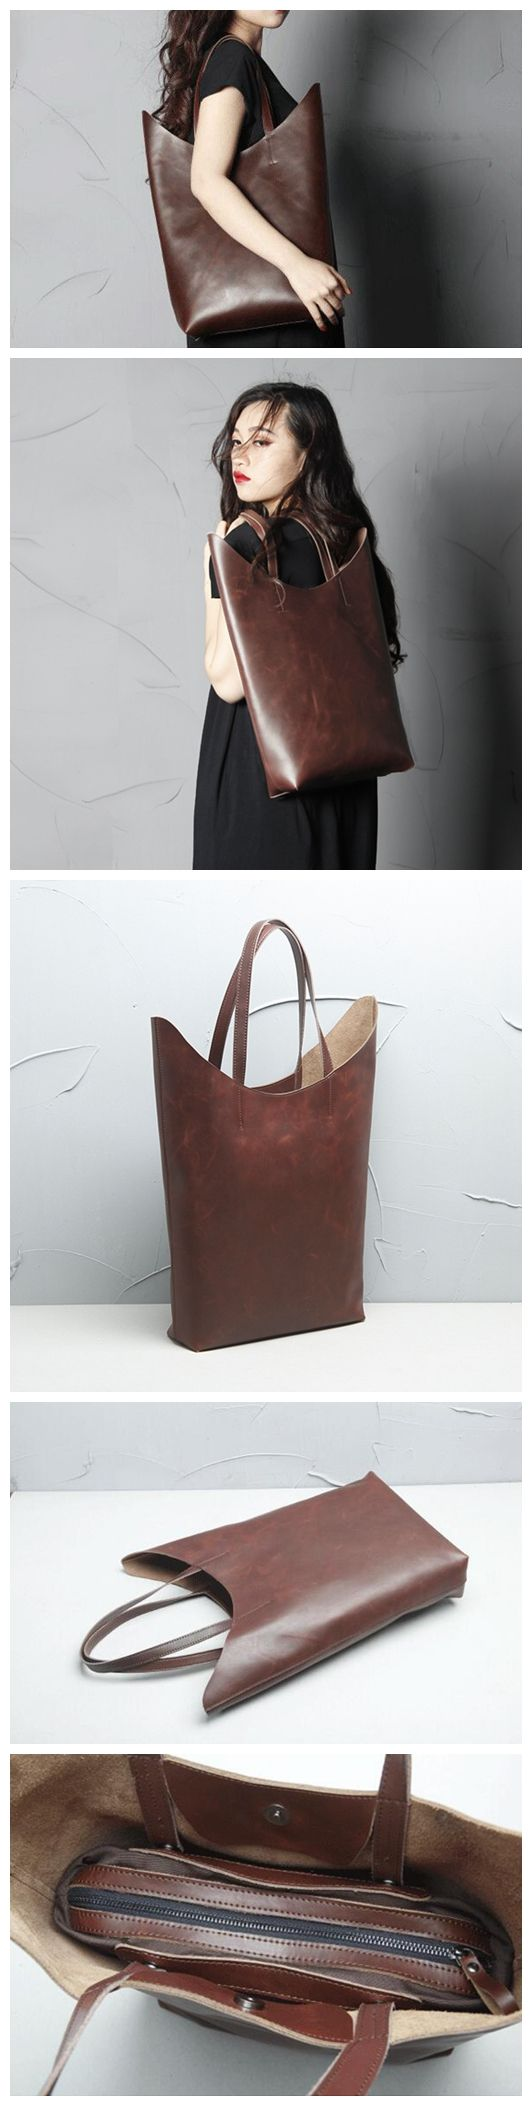 Handmade Genuine Leather Tote Bags, Leather Handbag, Women's Good Gift, Leather Goods For Women, Leather Design